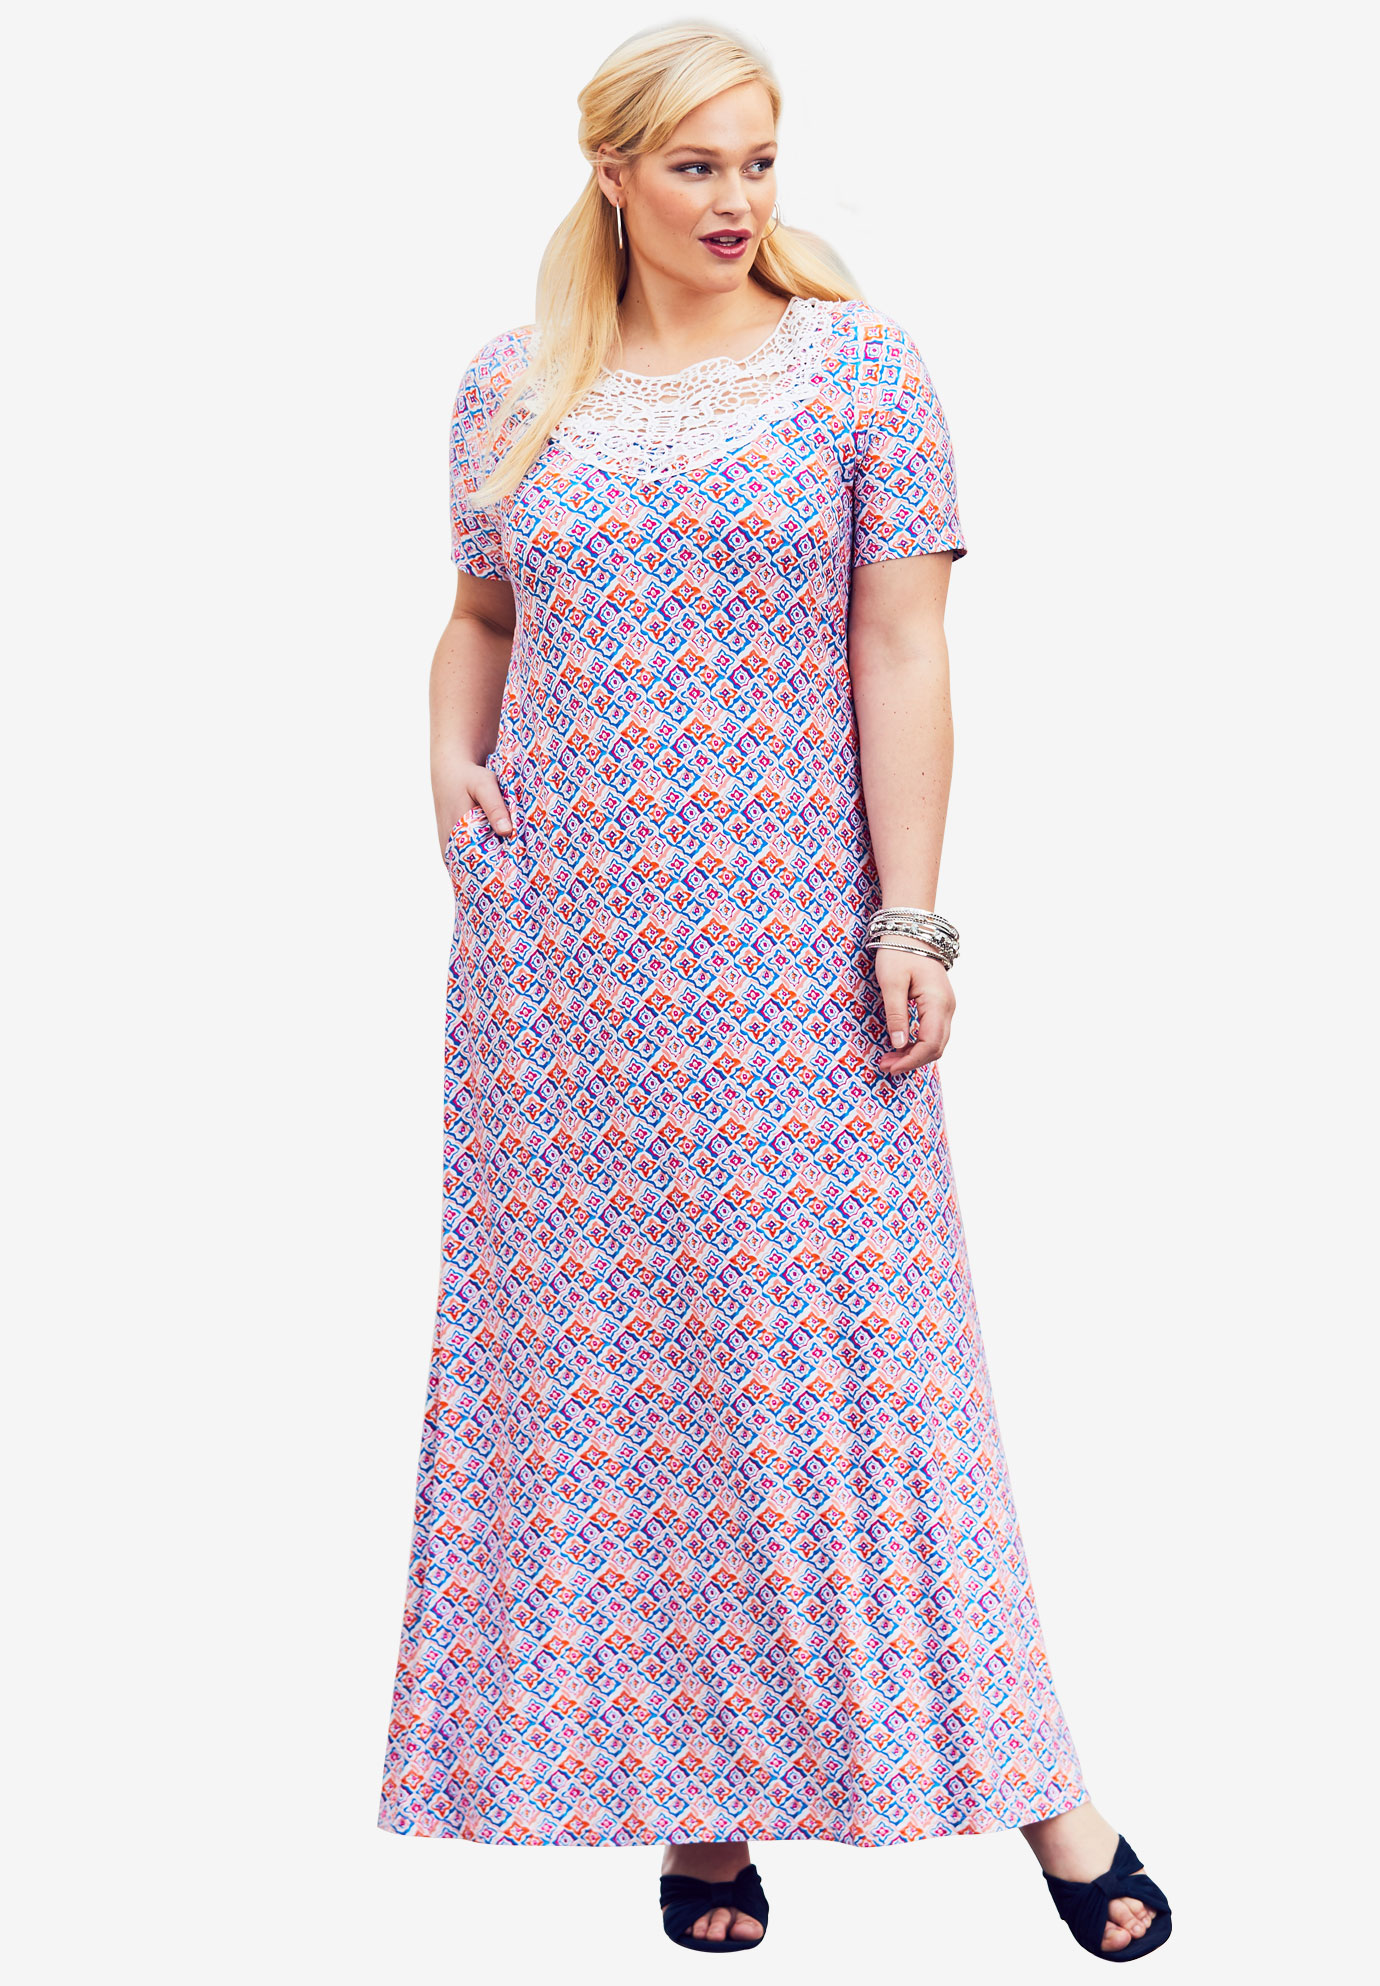 8254e2e910 Applique Maxi Dress